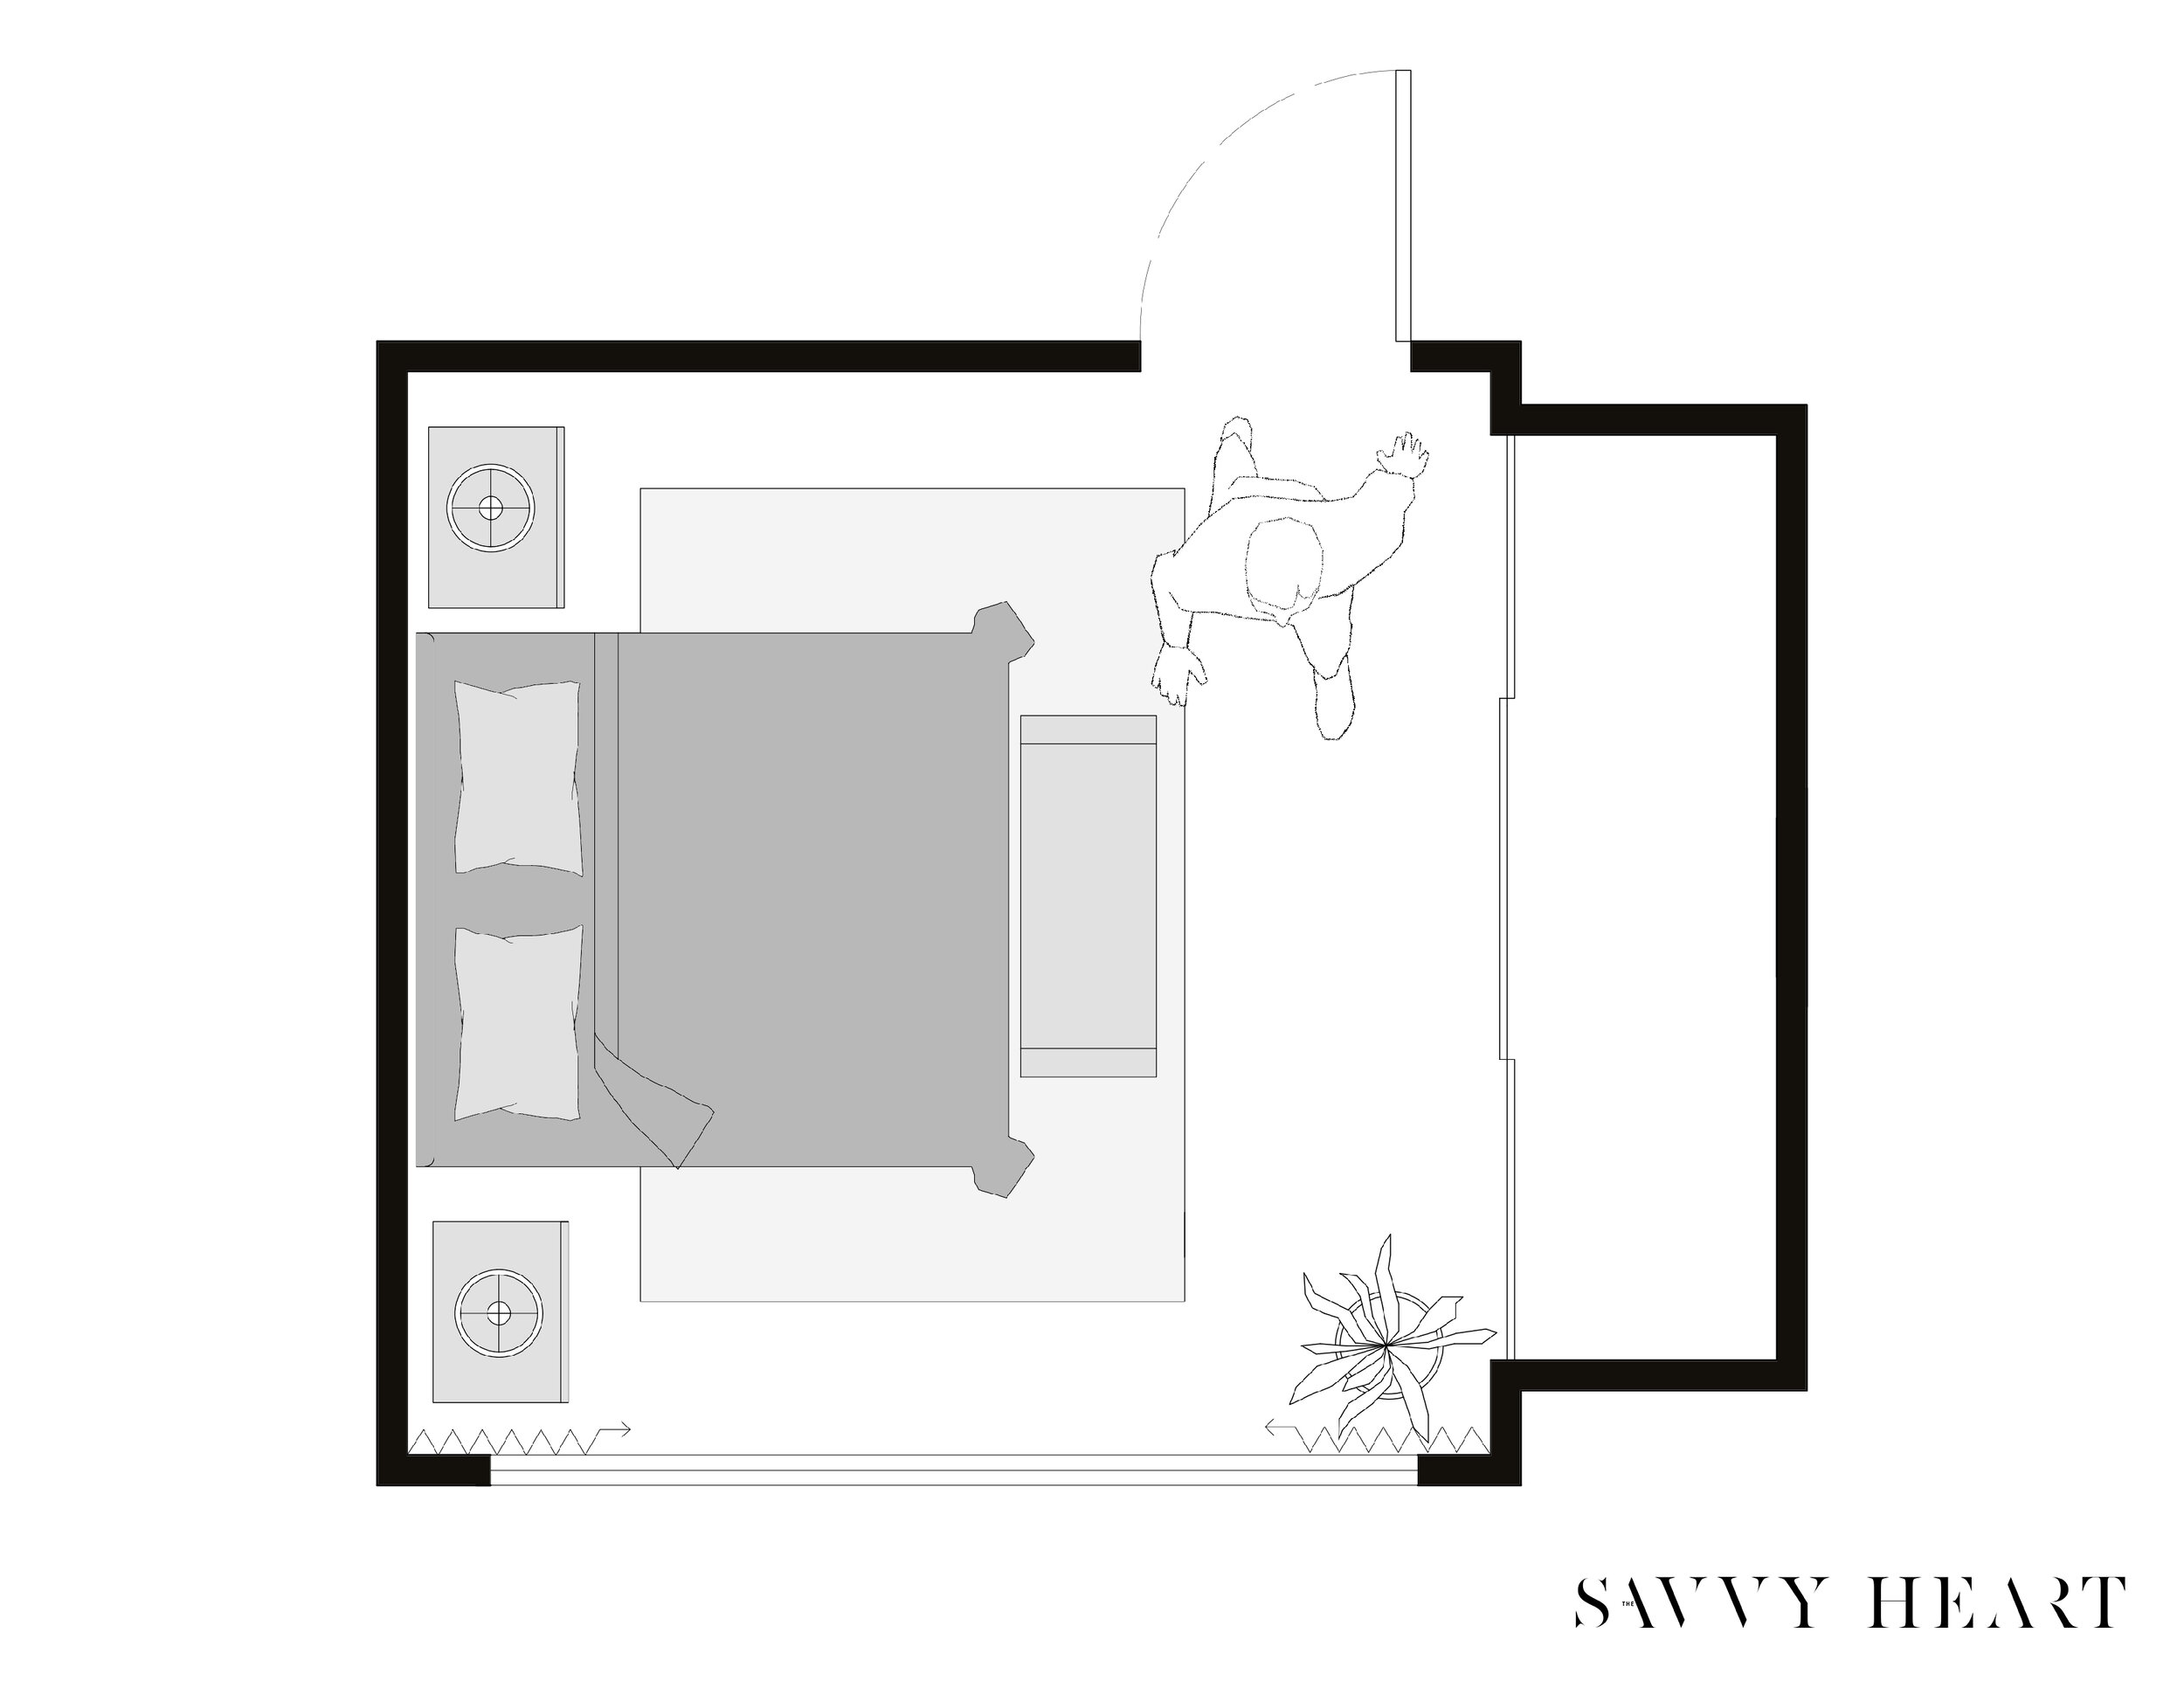 5 Layout Ideas For A 12 X 12 Square Bedroom W Floor Plans The Savvy Heart